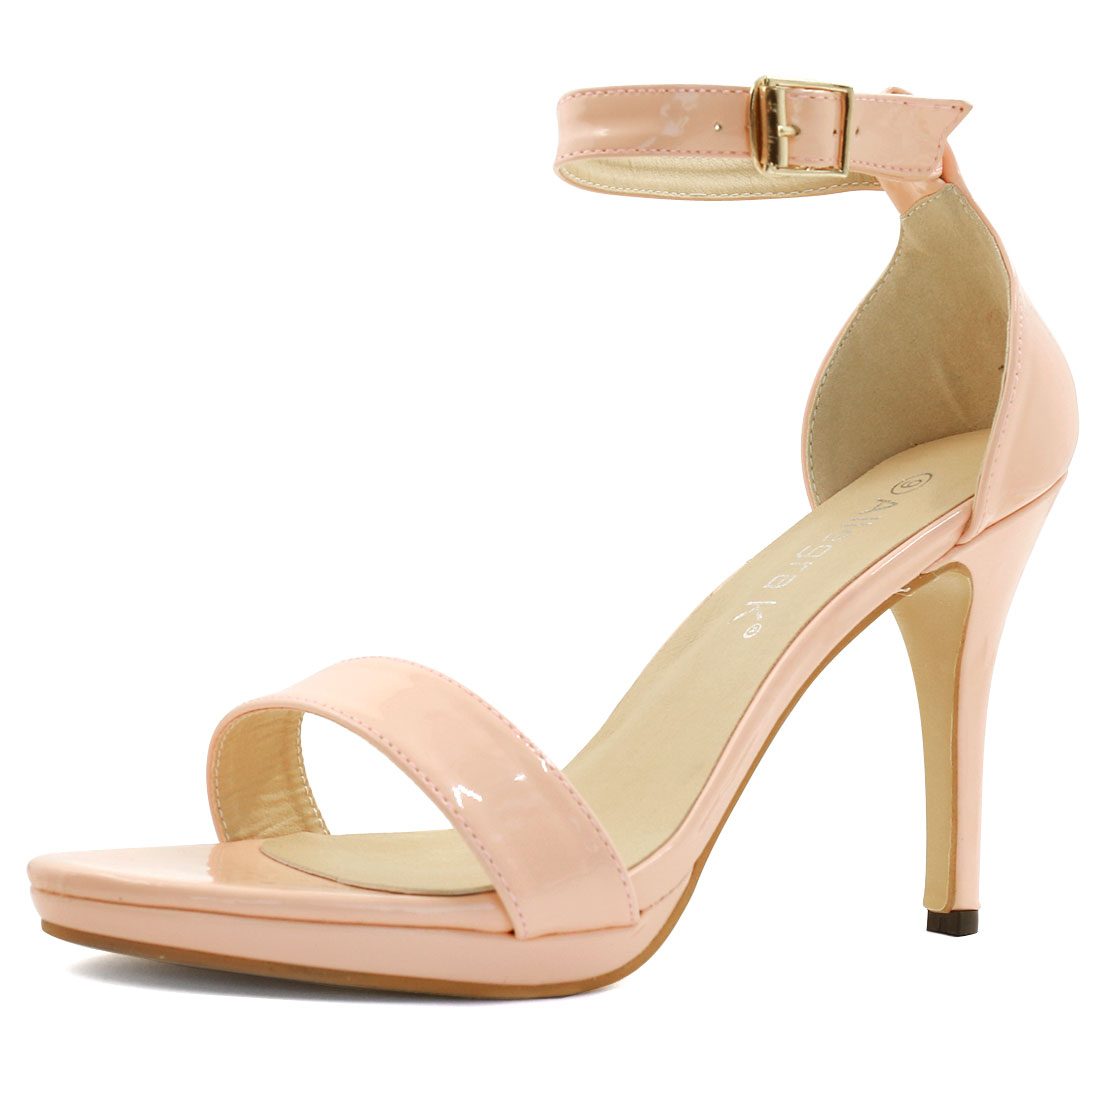 Woman Open Toe High Heel Metallic Ankle Strap Sandals Pink US 7